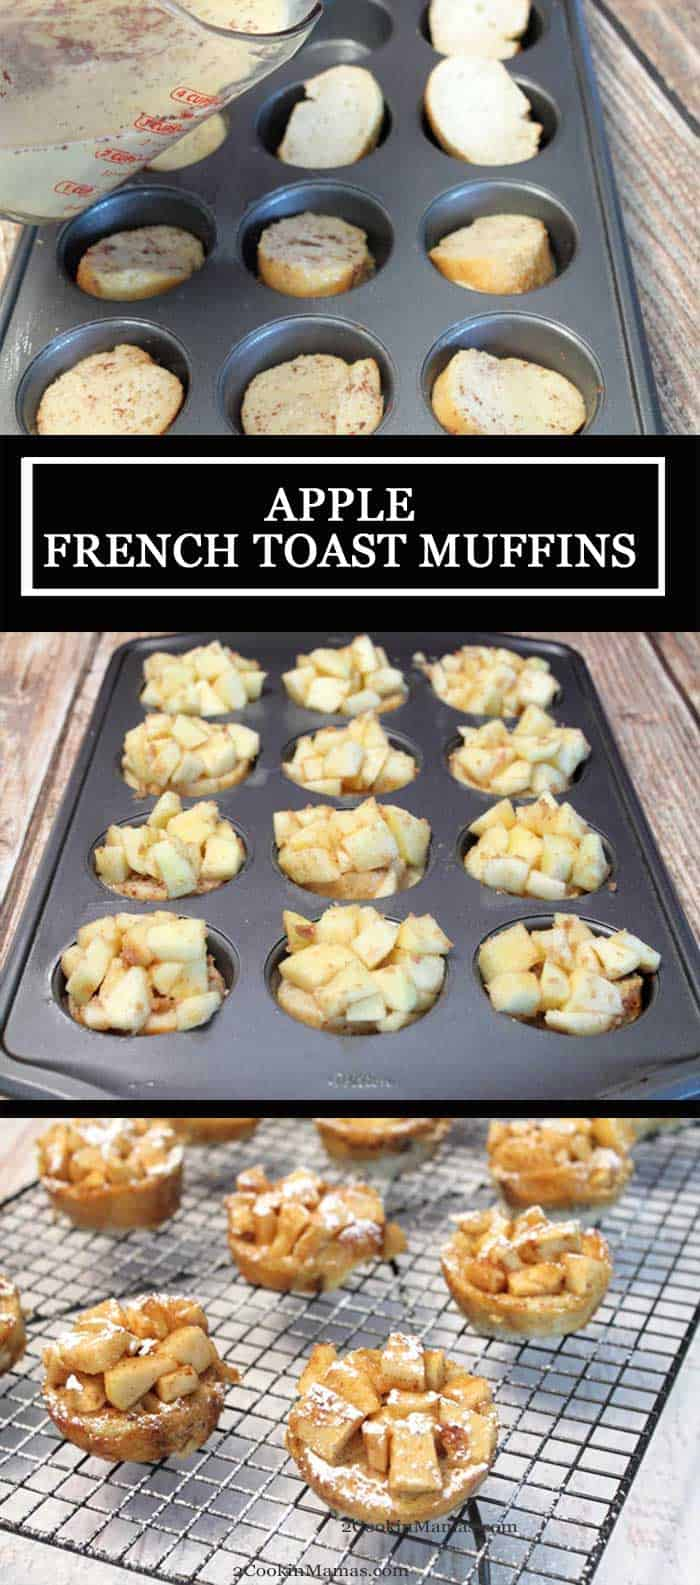 Apple French Toast Muffins long | 2 Cookin Mamas Apple French Toast Muffins are individual servings of French Toast in muffin form with all the same flavors of your favorite French Toast along with a sweet apple topping. They're easy to make and perfect for breakfast at home or an on-the-go treat. #frenchtoast #grabngobreakfast #breakfast #apples #recipe #muffins